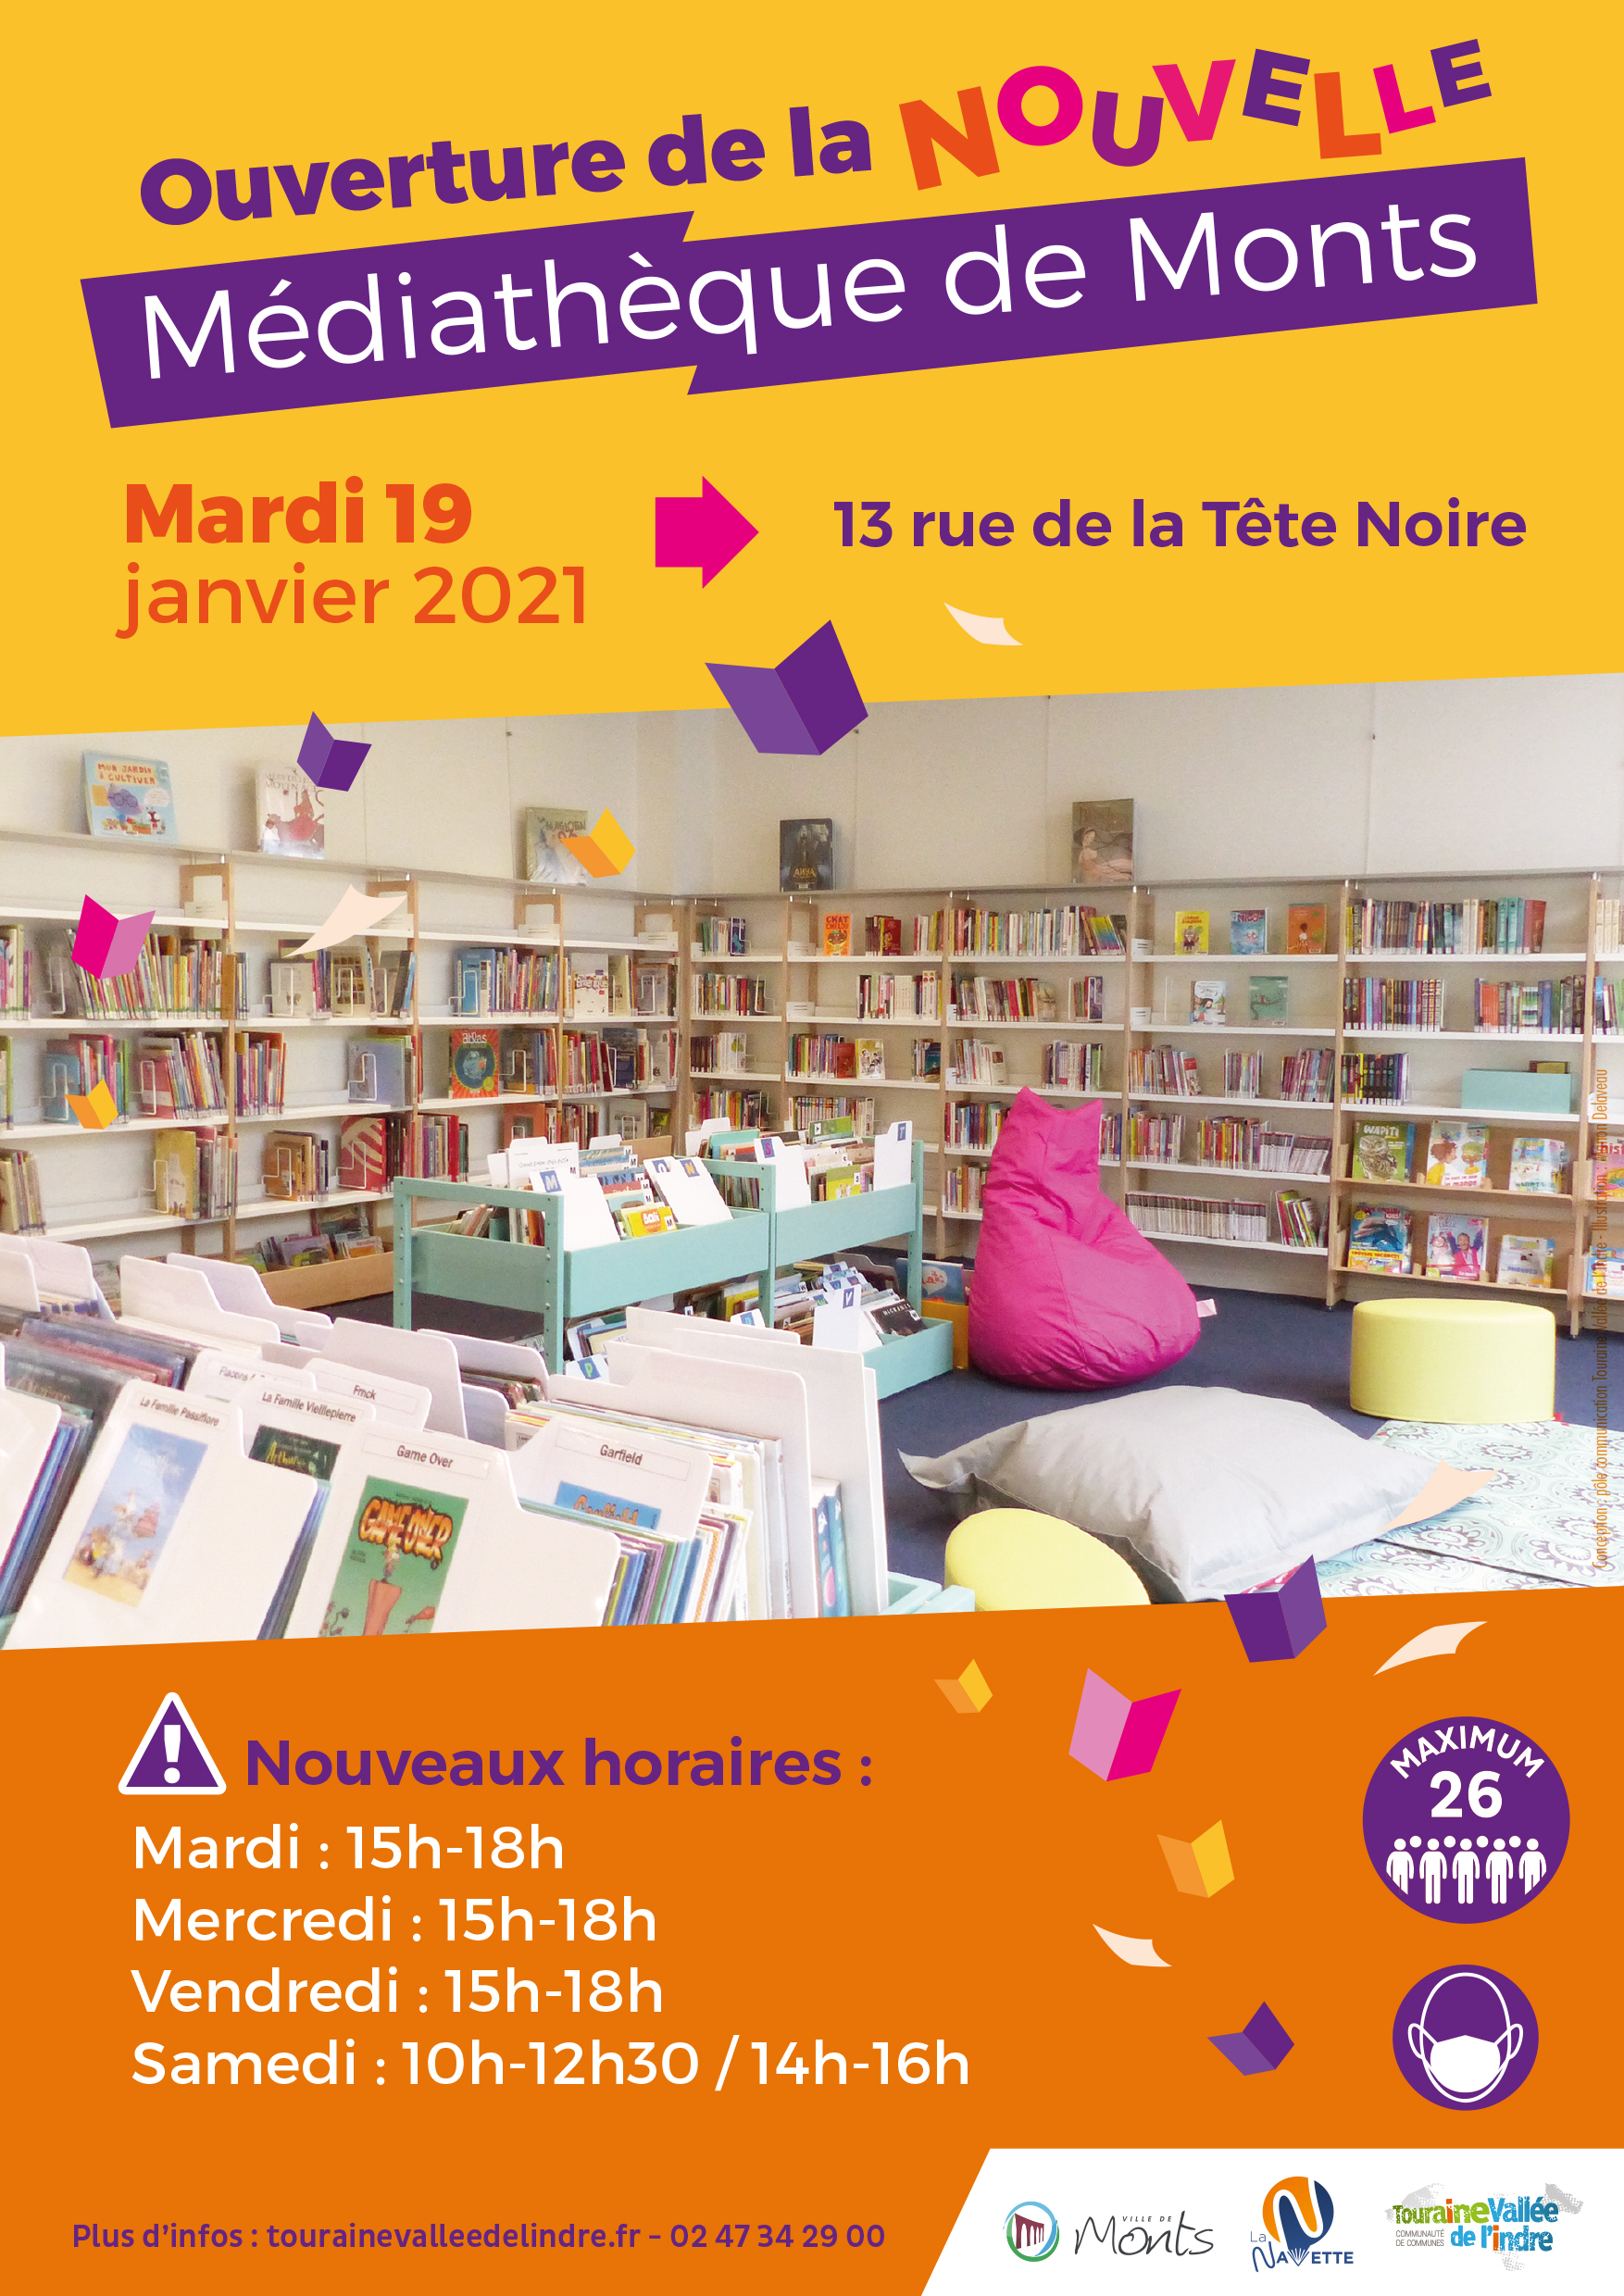 OUVERTURE-MEDIATHEQUE-MONTS-3.jpg